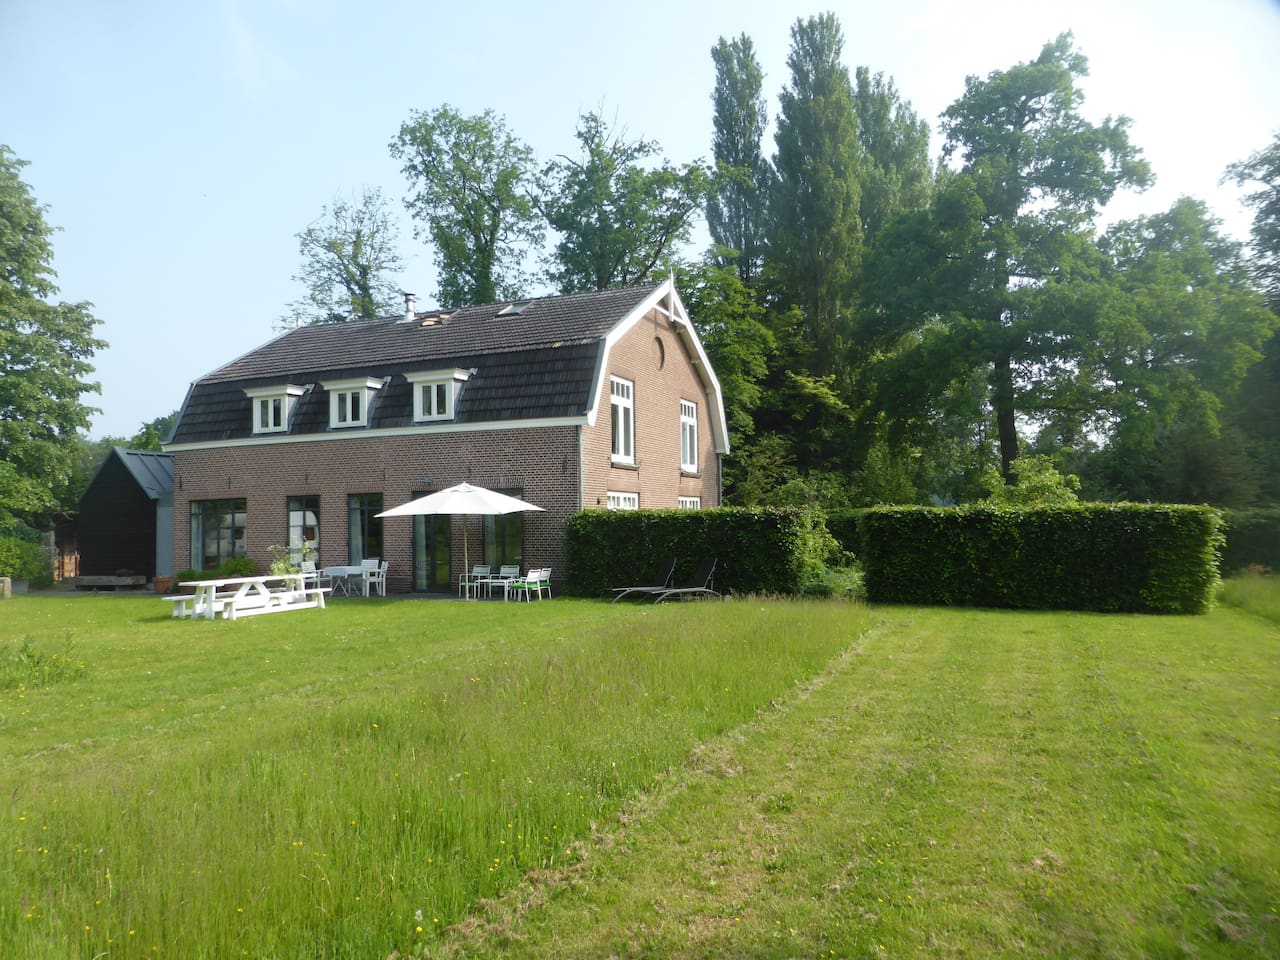 Very nice quiet country location. Great for a little rest and relaxation or a bike ride through the countryside. But also at walking and biking distance of the city of Utrecht and of course Zeist. 40 minutes to Amsterdam by train or car.